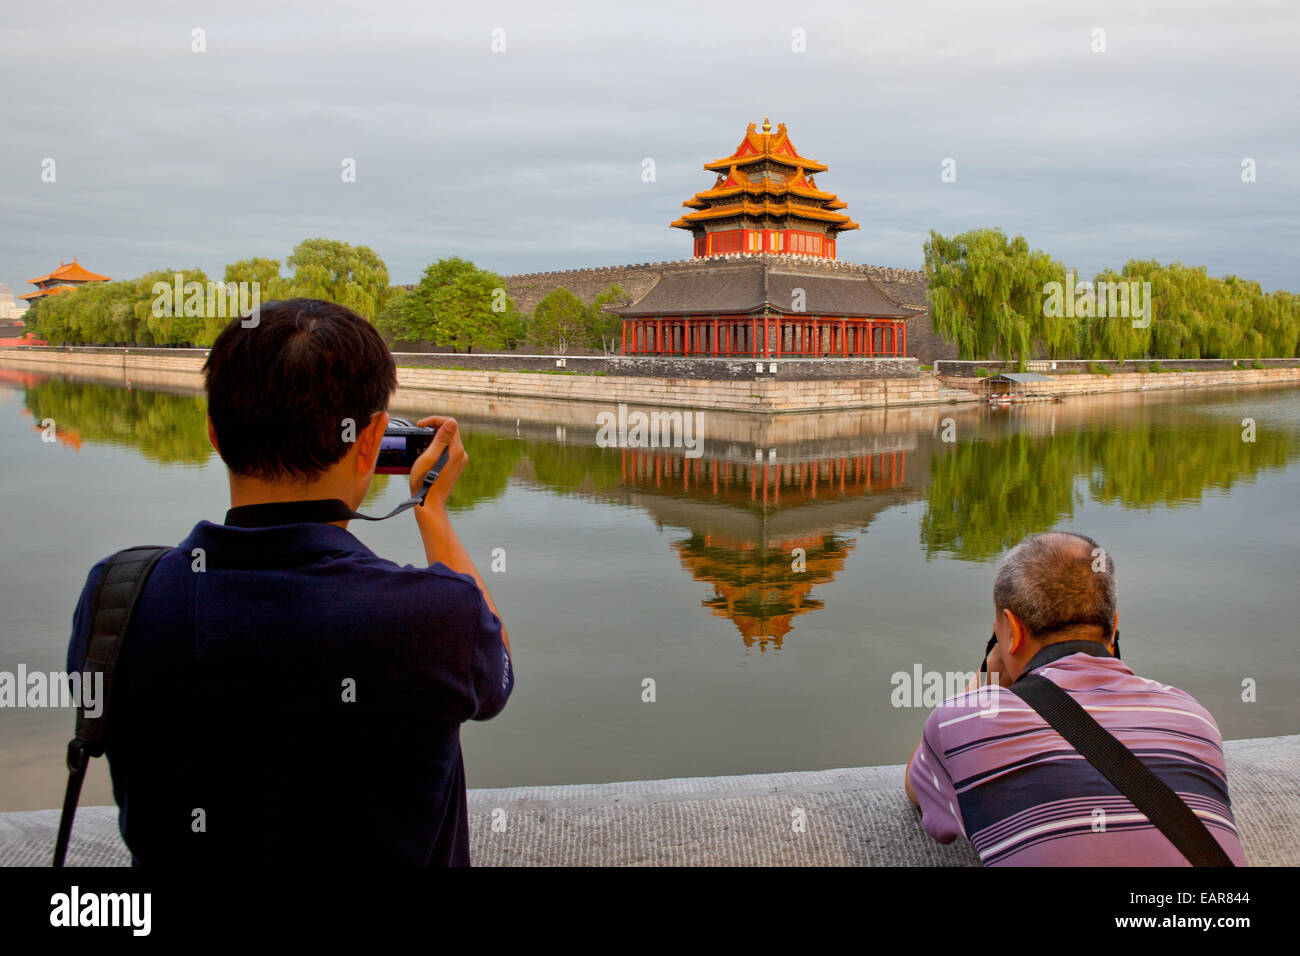 China, Forbidden City, tourism, vacation, pagoda, water, photographers, Buddhism, Capital Cities, Chinese Culture, - Stock Image